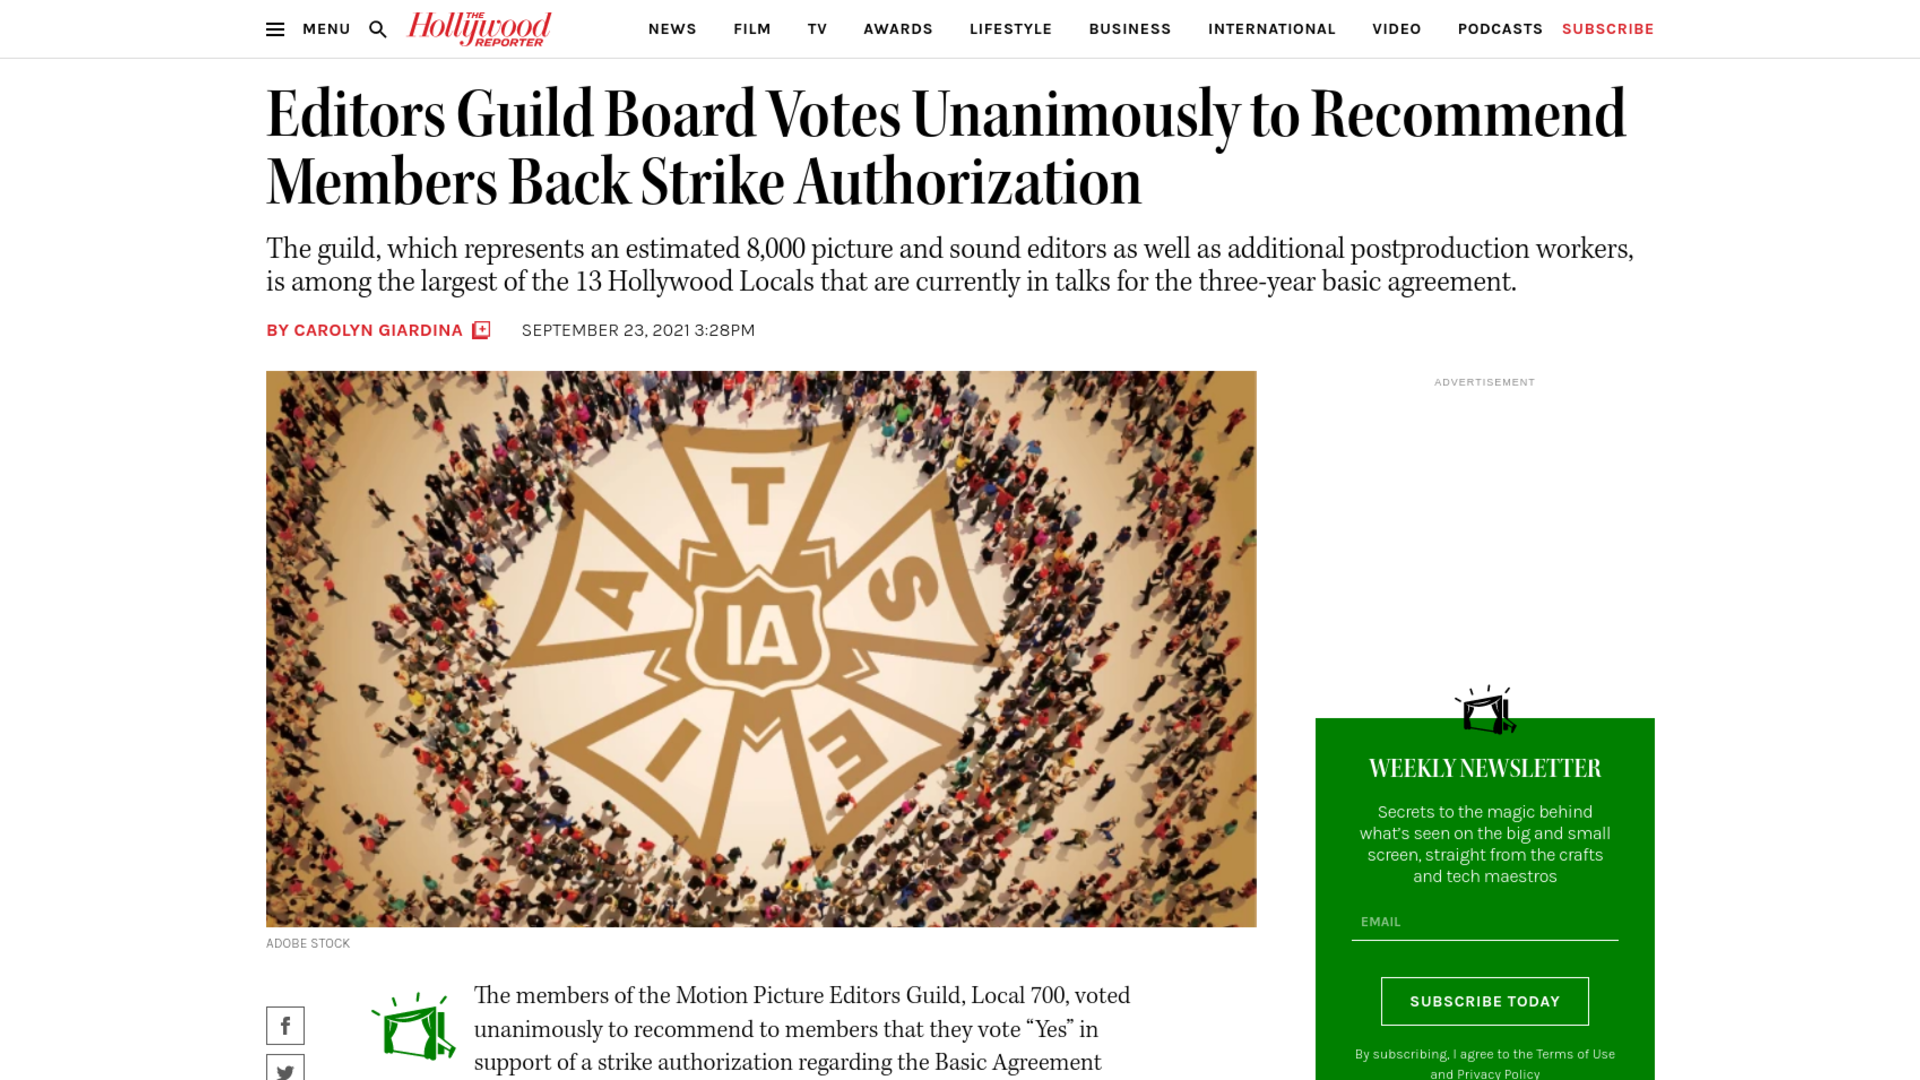 Fairness Rocks News Editors Guild Board Votes Unanimously to Recommend Members Back Strike Authorization